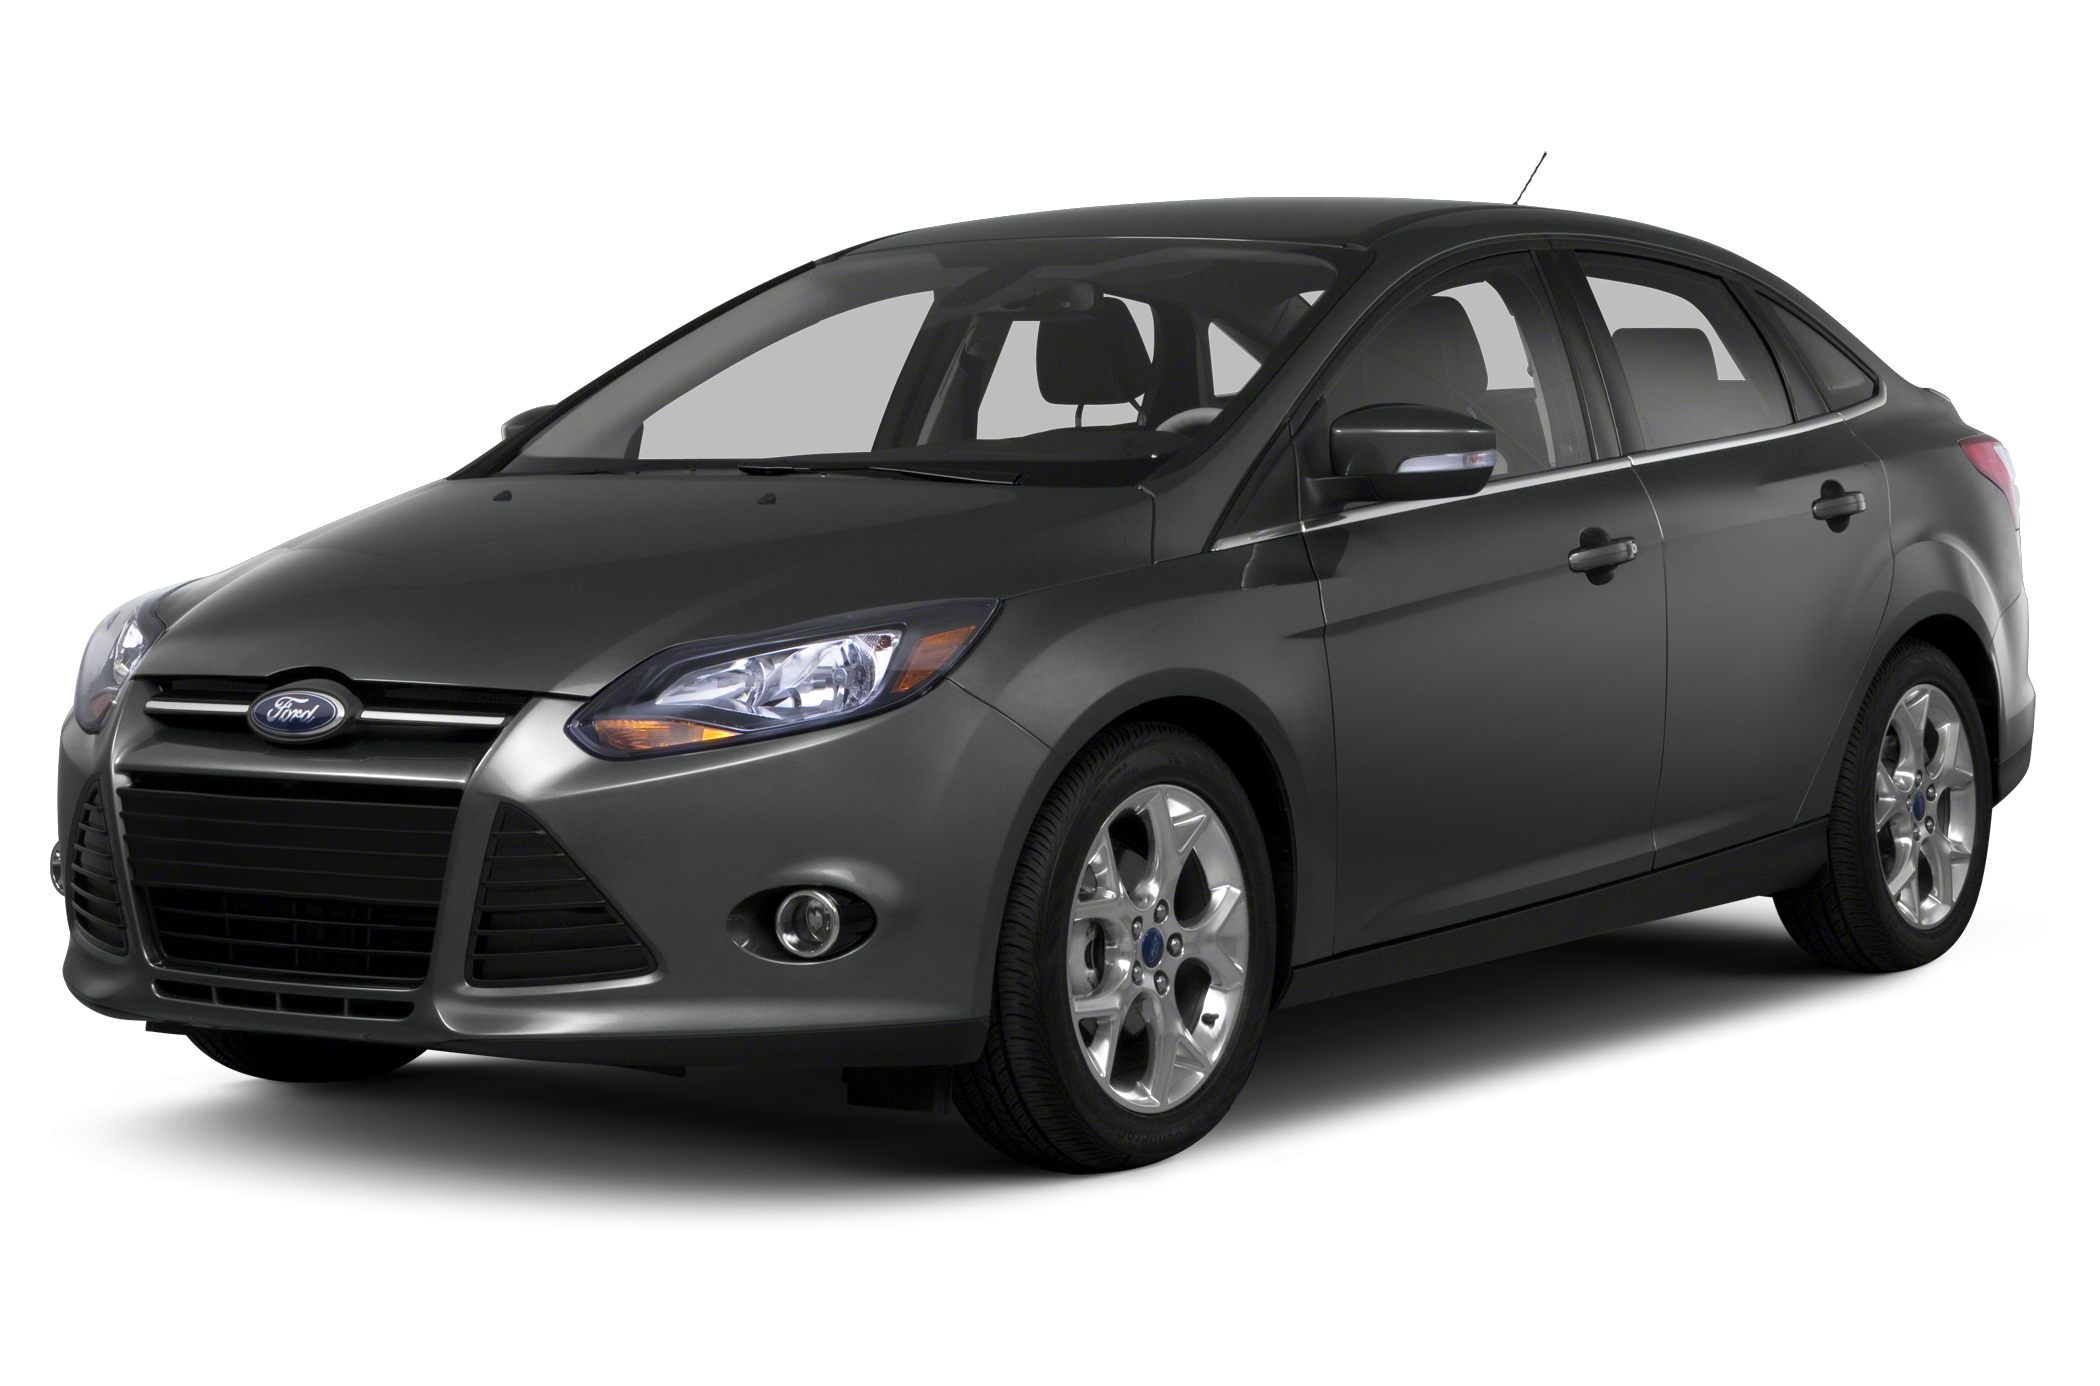 2013 Ford Focus SE Sedan for sale in Santa Maria for $12,699 with 64,620 miles